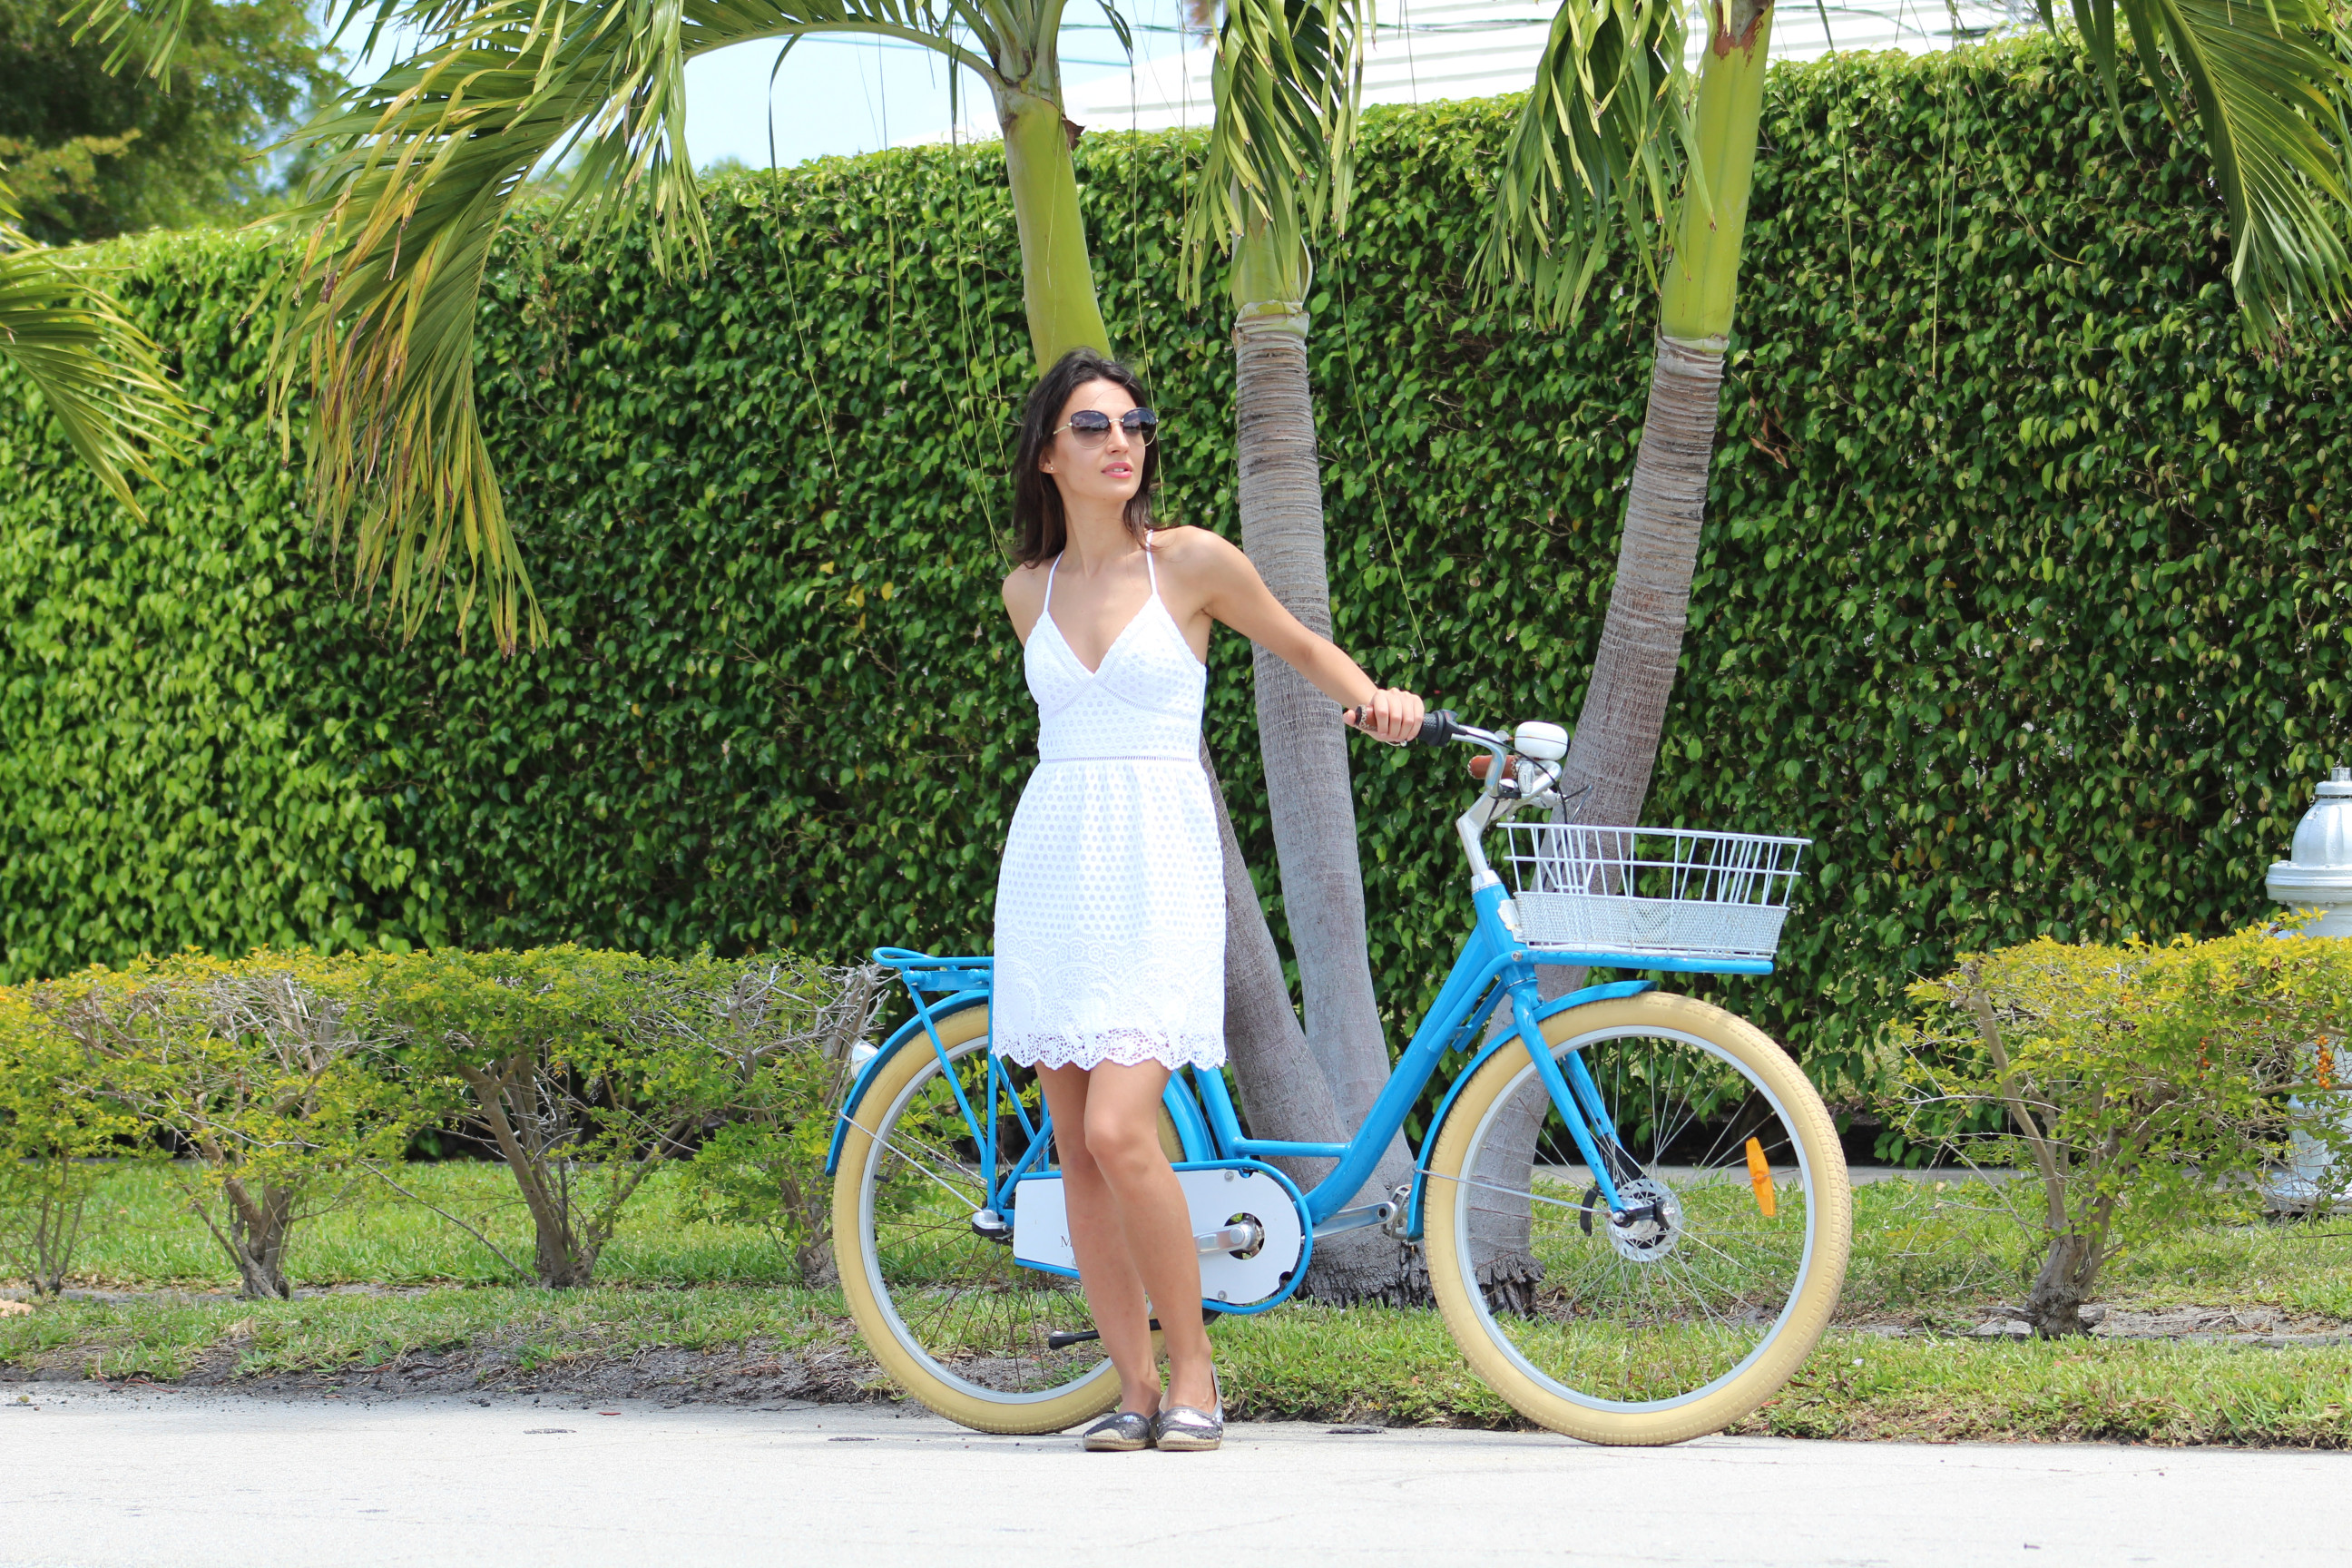 mihaela gurau fashion blog blogger Miami bike bicycle biking bicicleta outfit post